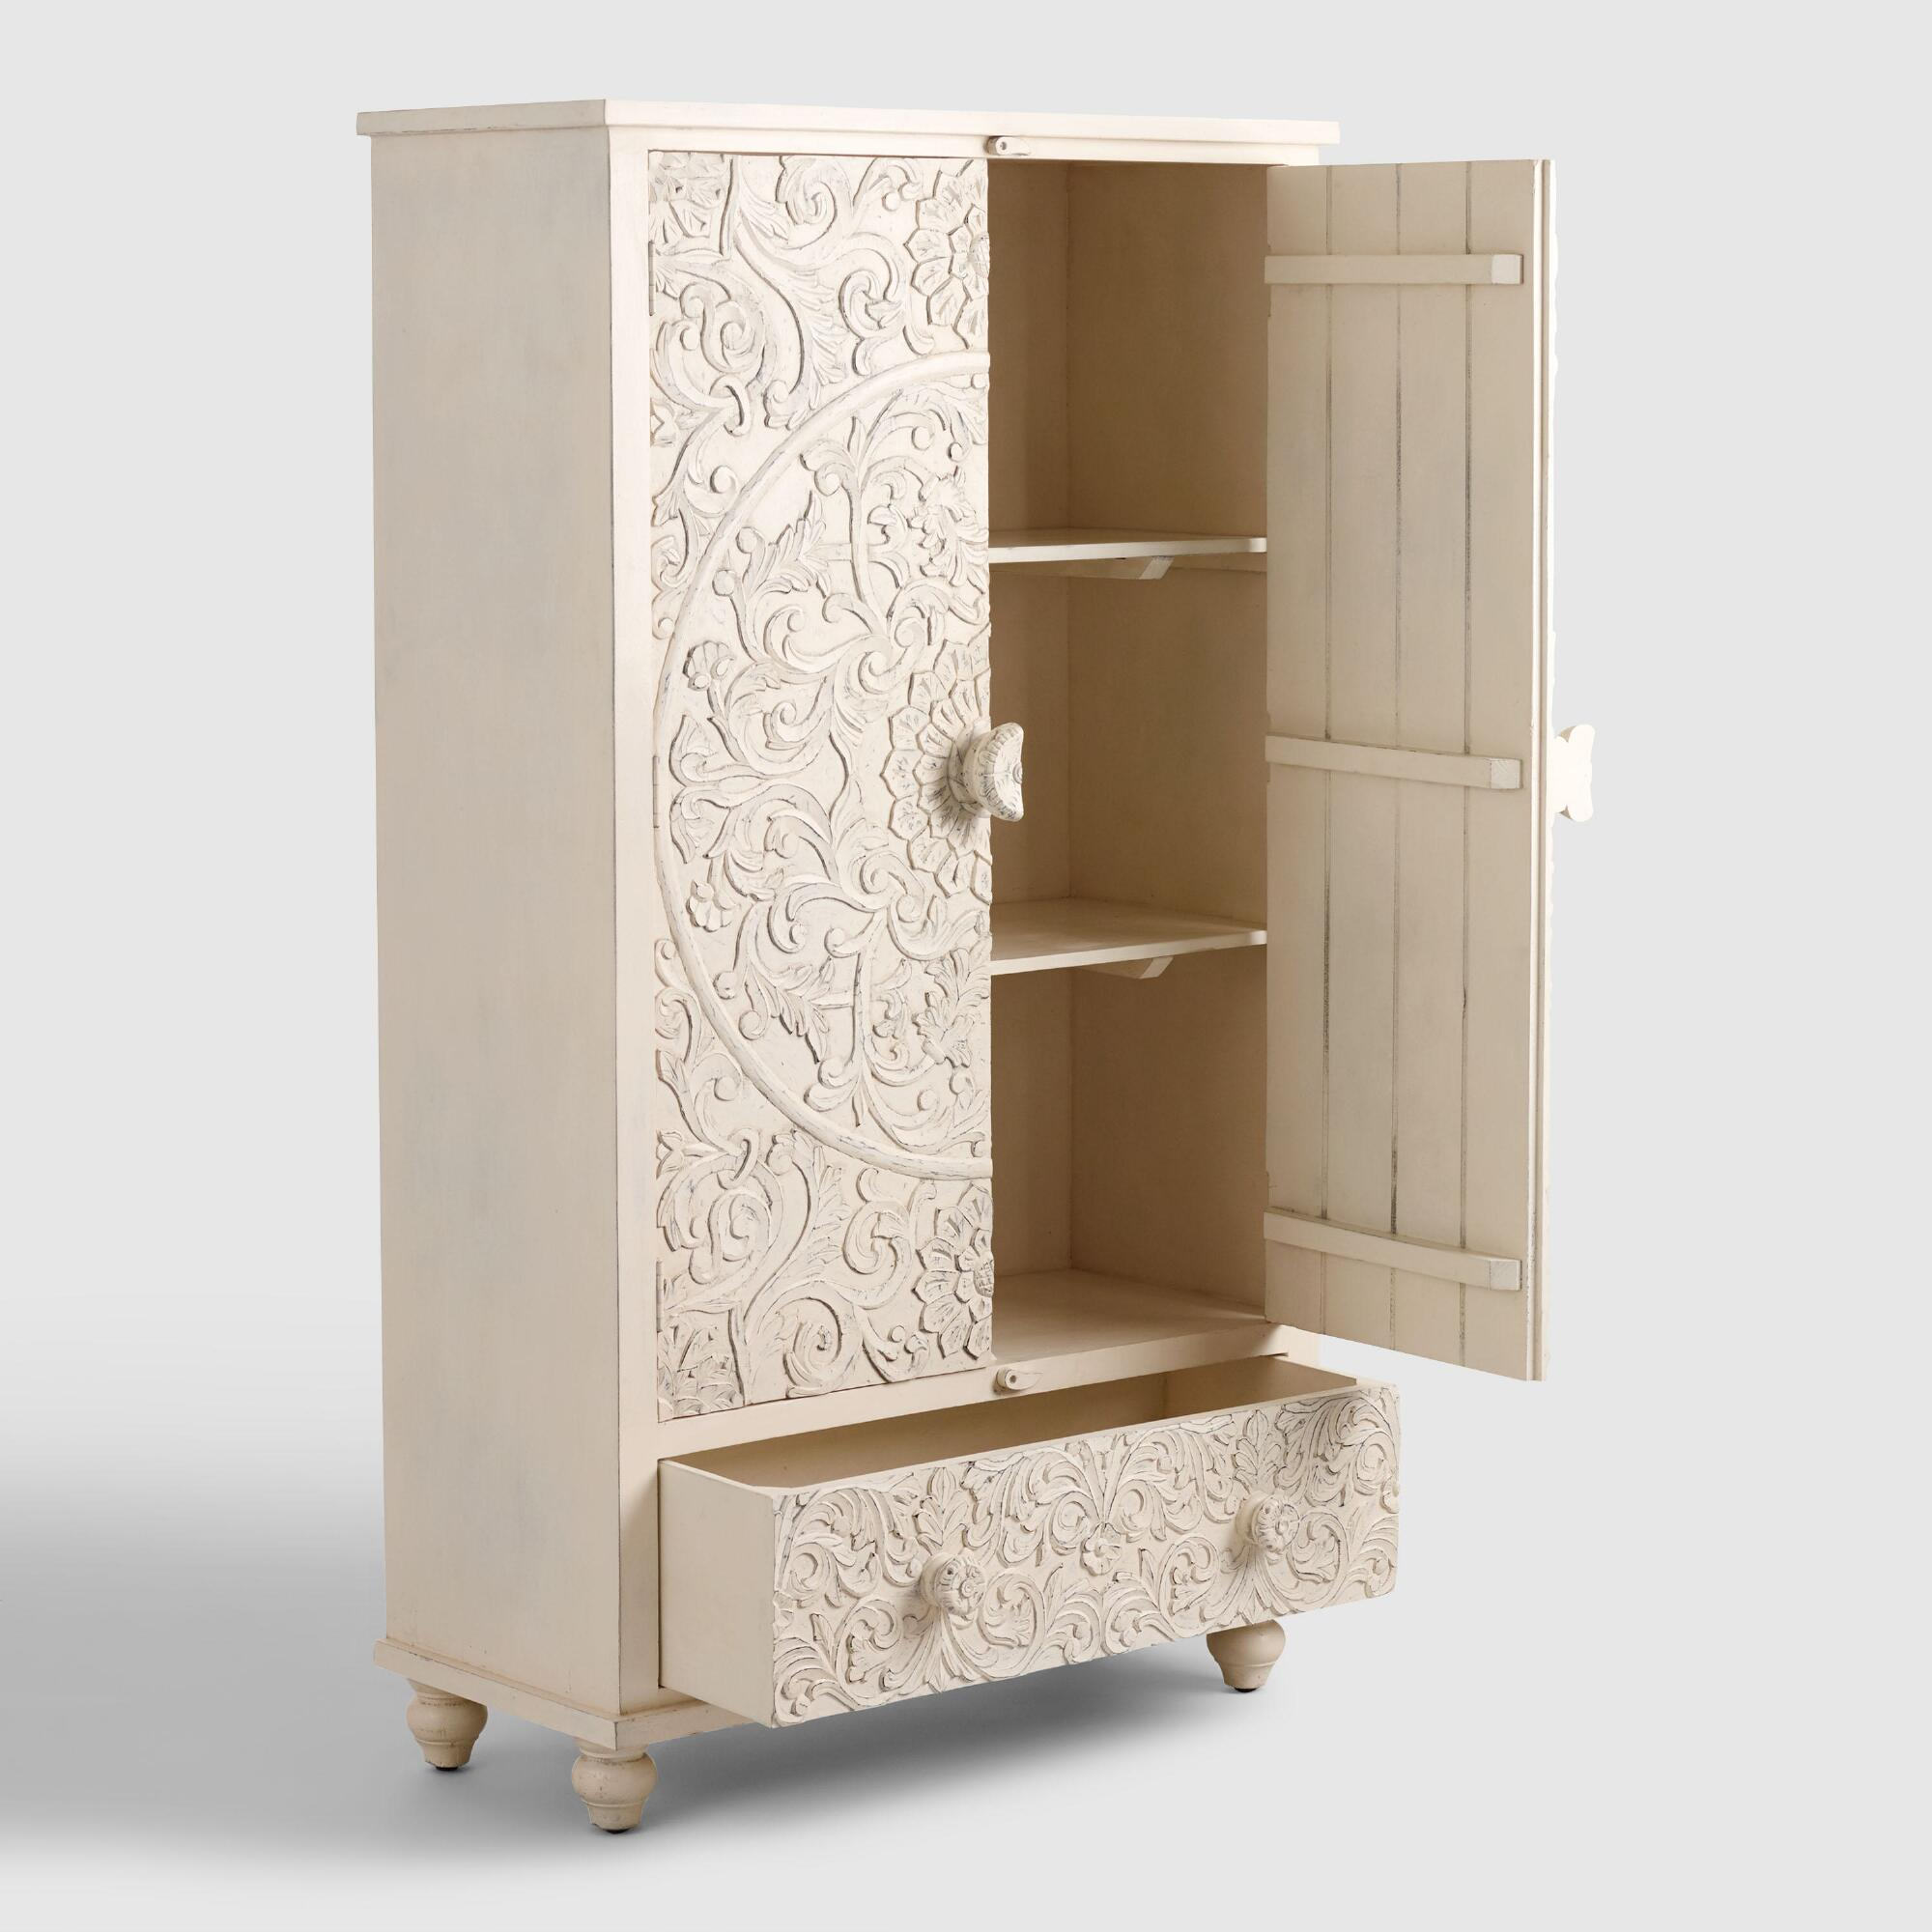 wardrobe design walk for white saver systems armoire organizers ikea space storage closet ideas your clothes units free portable standing closets in handbag